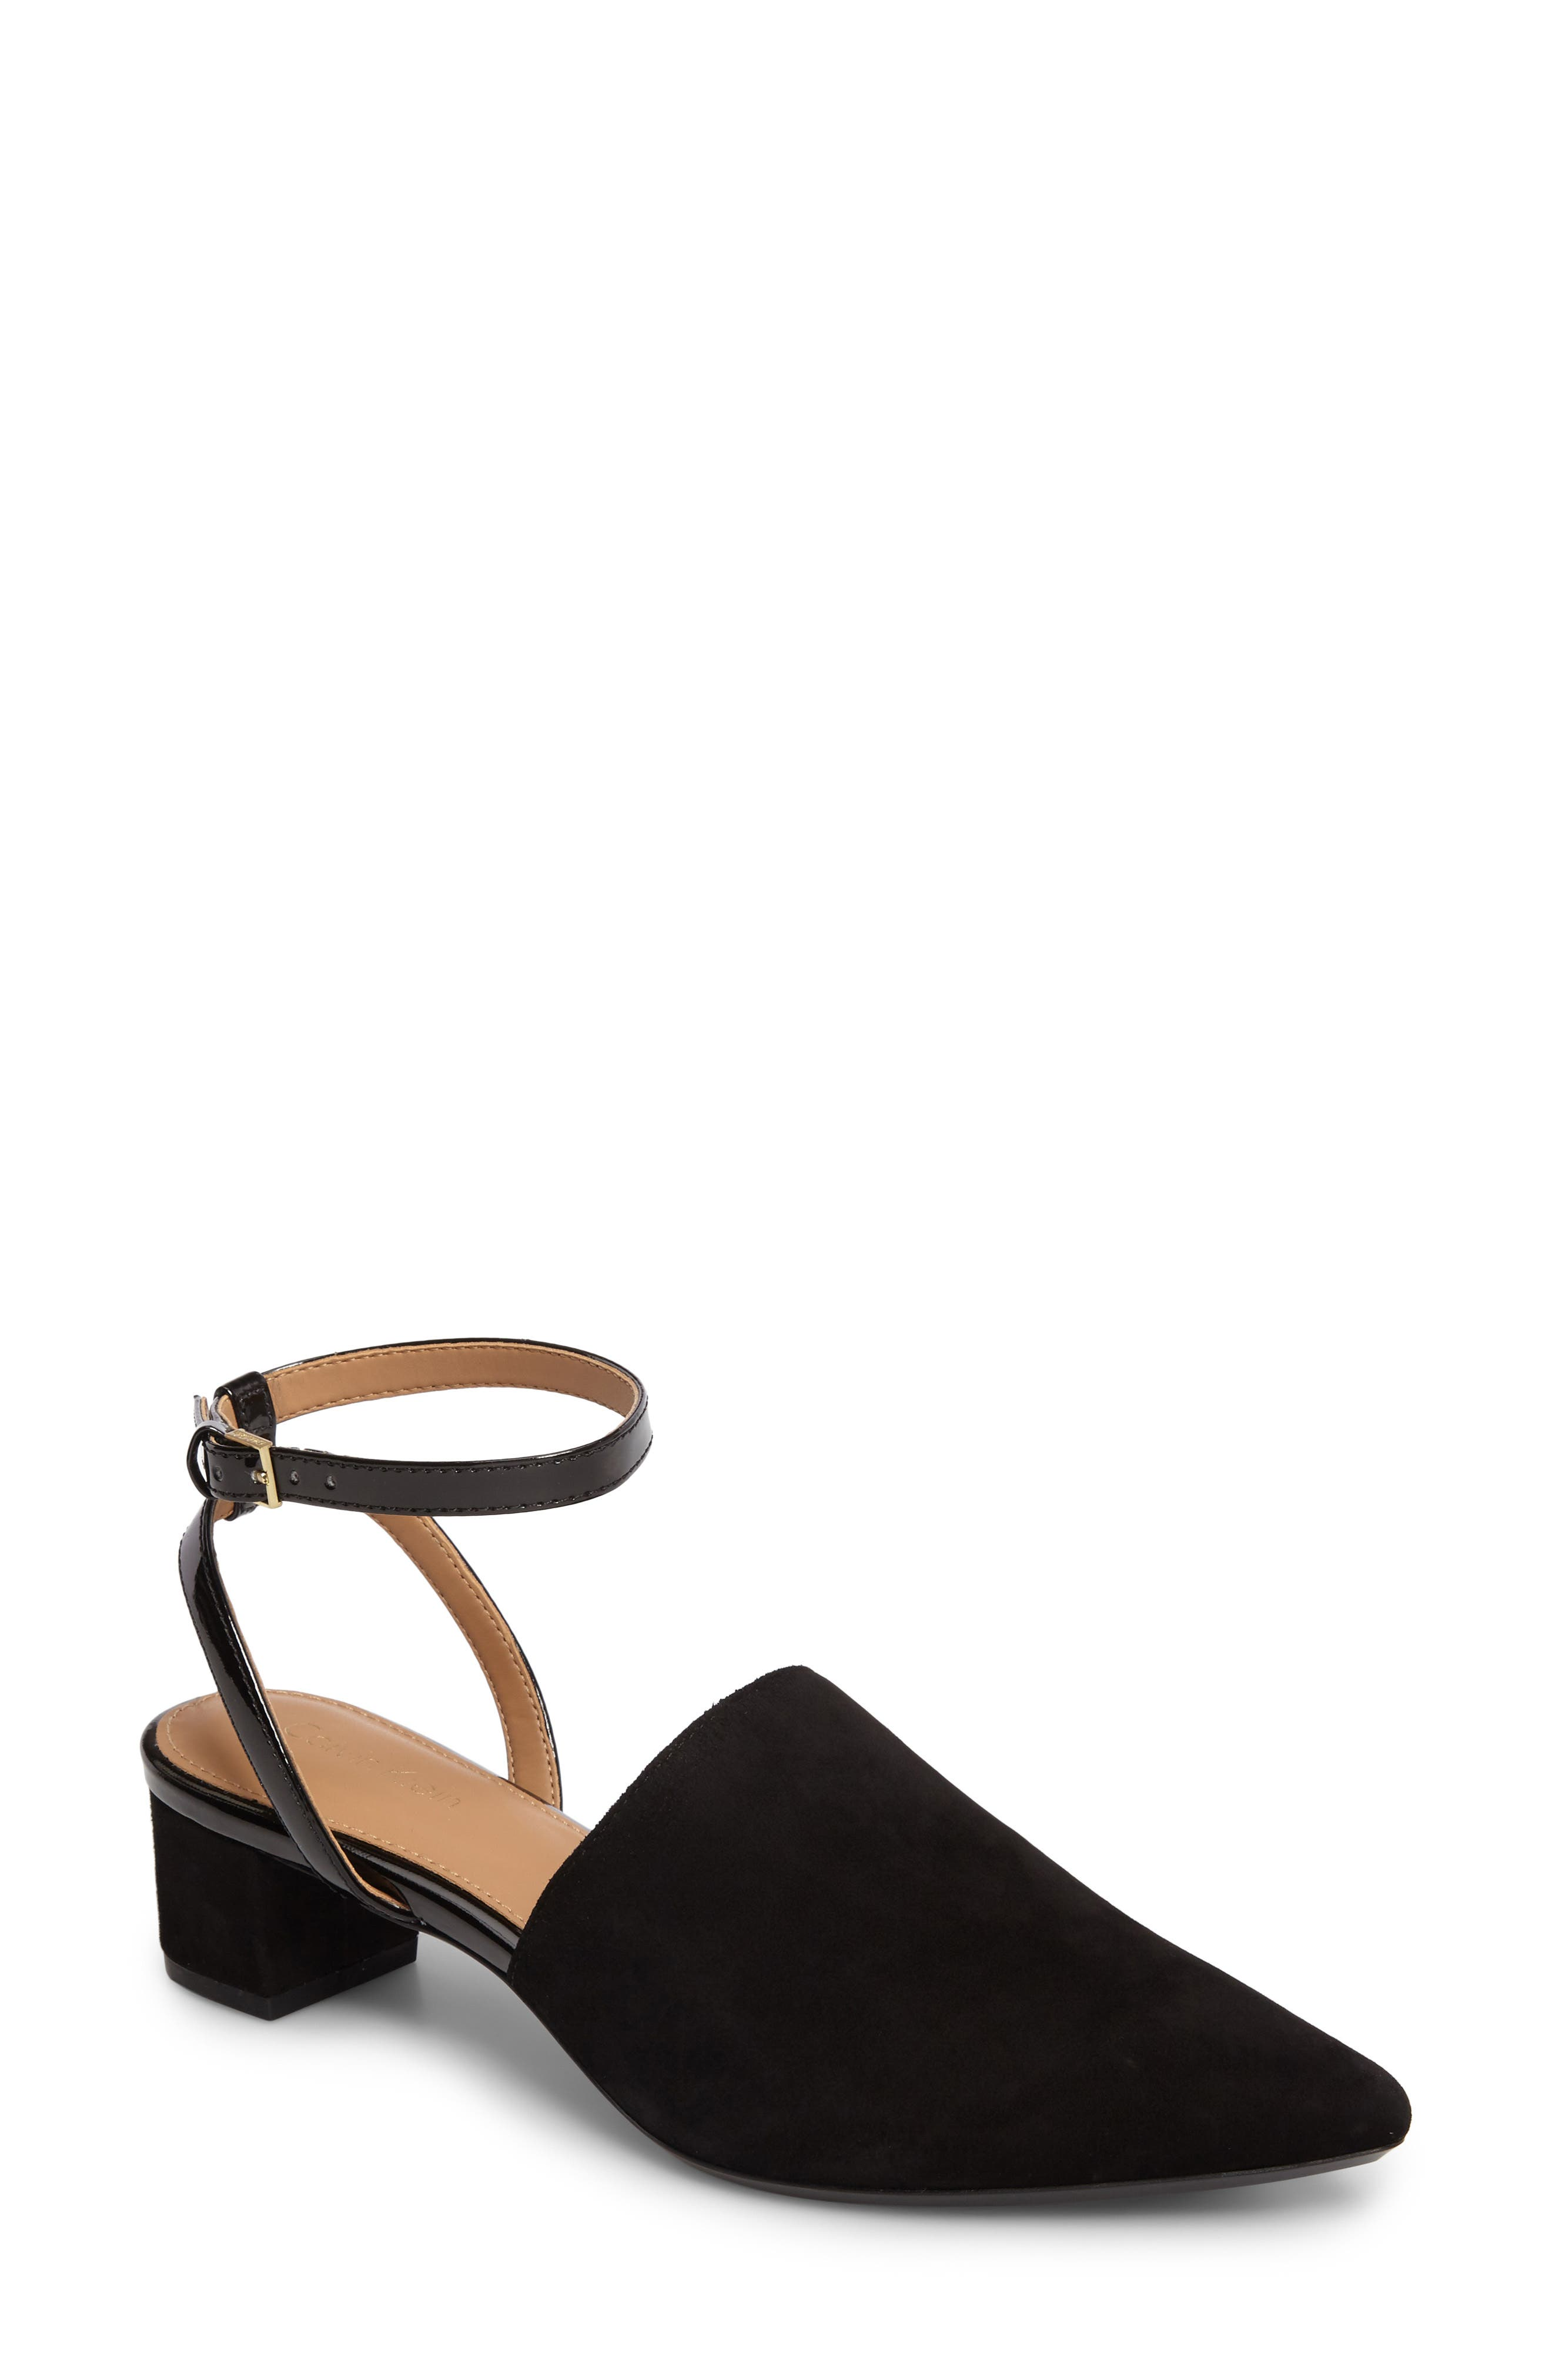 Ginetta Ankle Strap Pump,                             Main thumbnail 3, color,